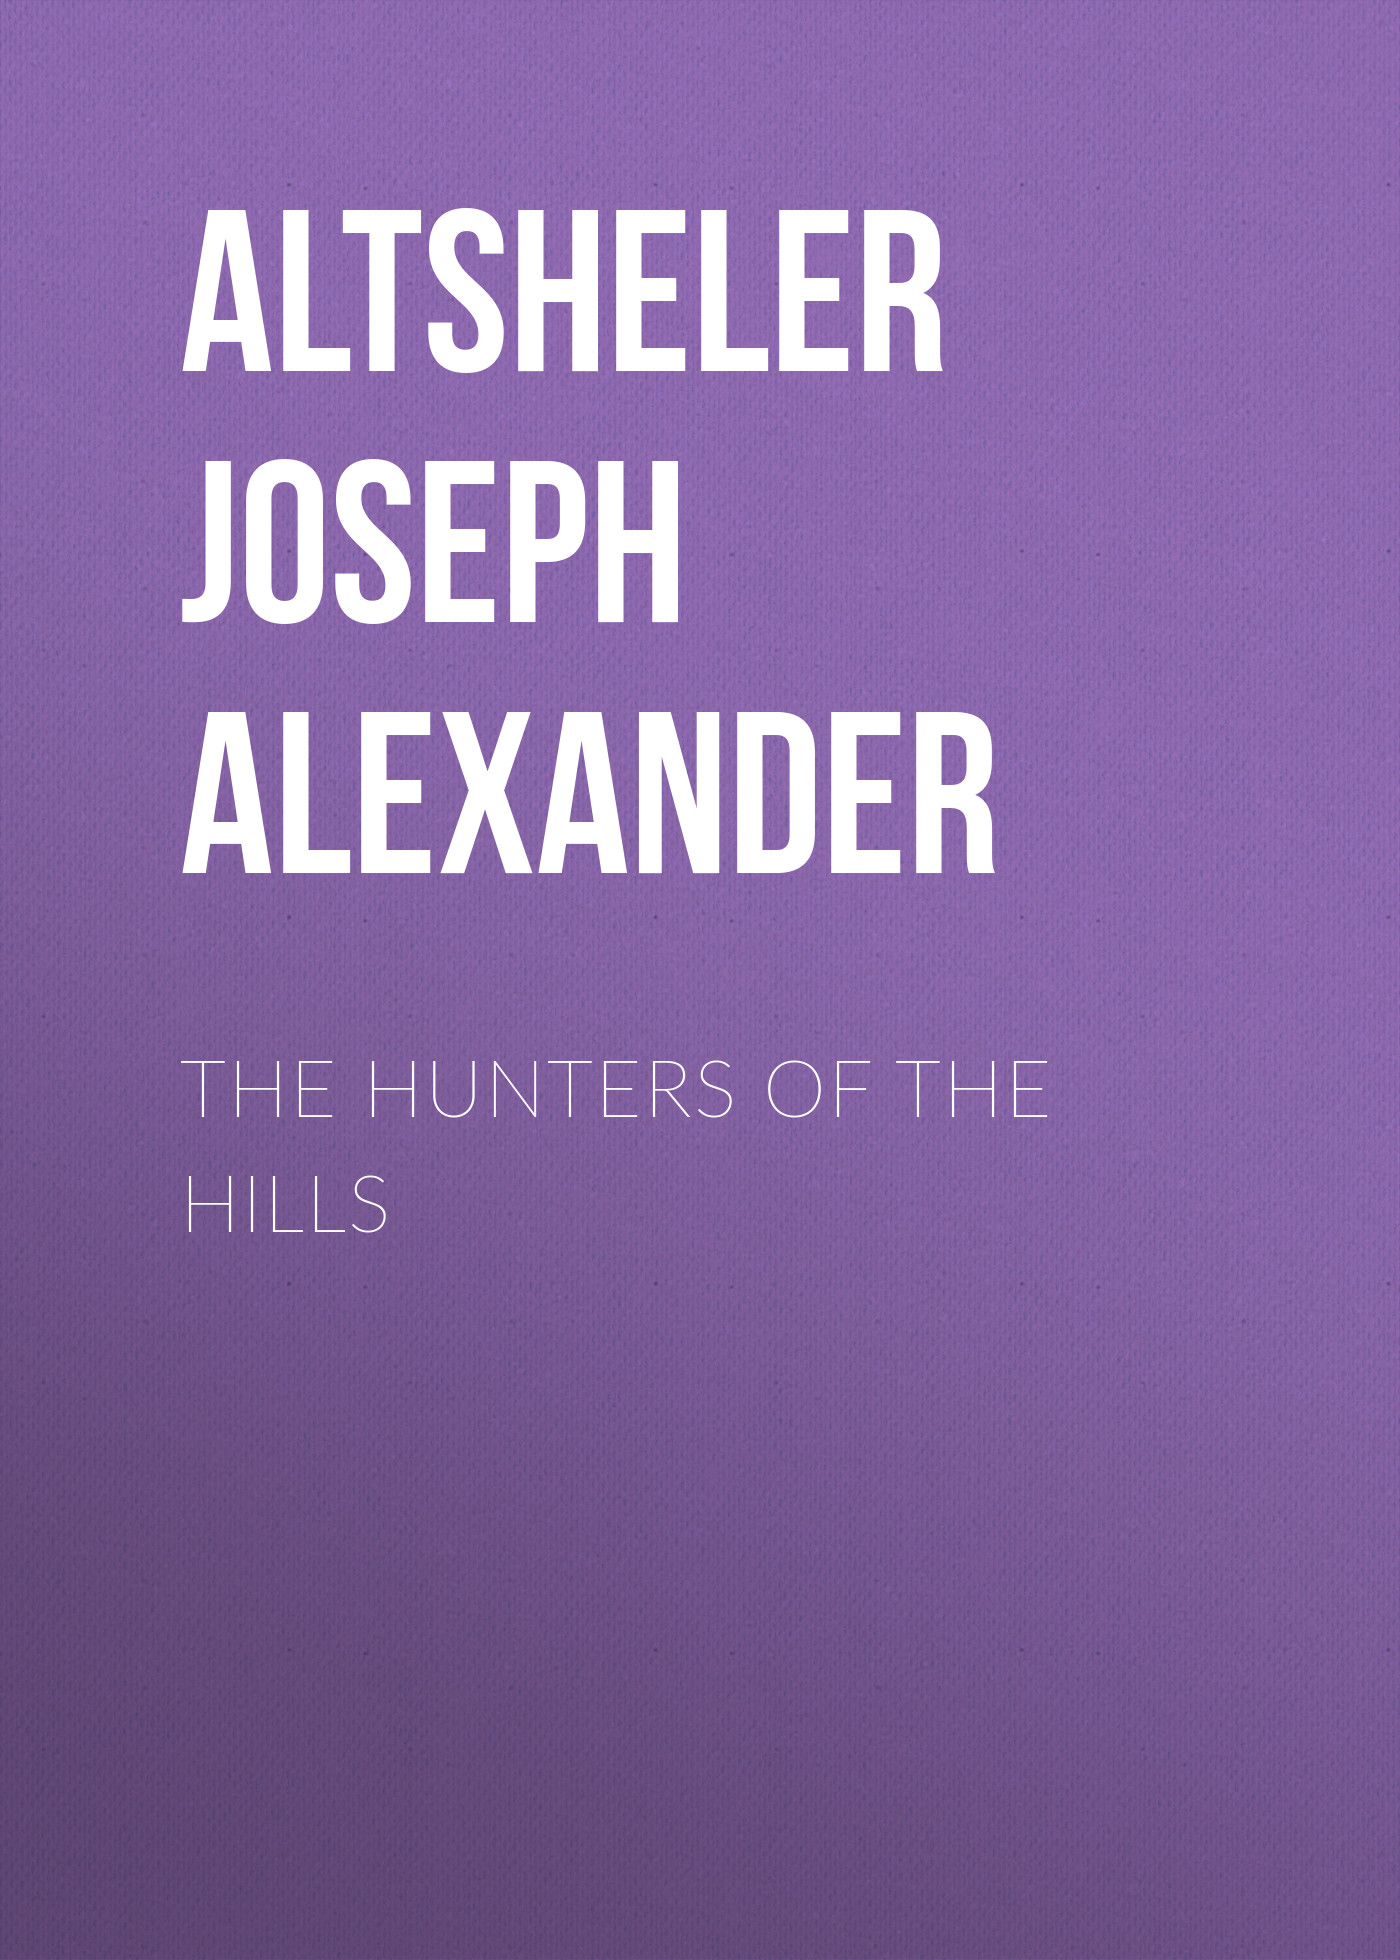 Altsheler Joseph Alexander The Hunters of the Hills skirt joseph alexander